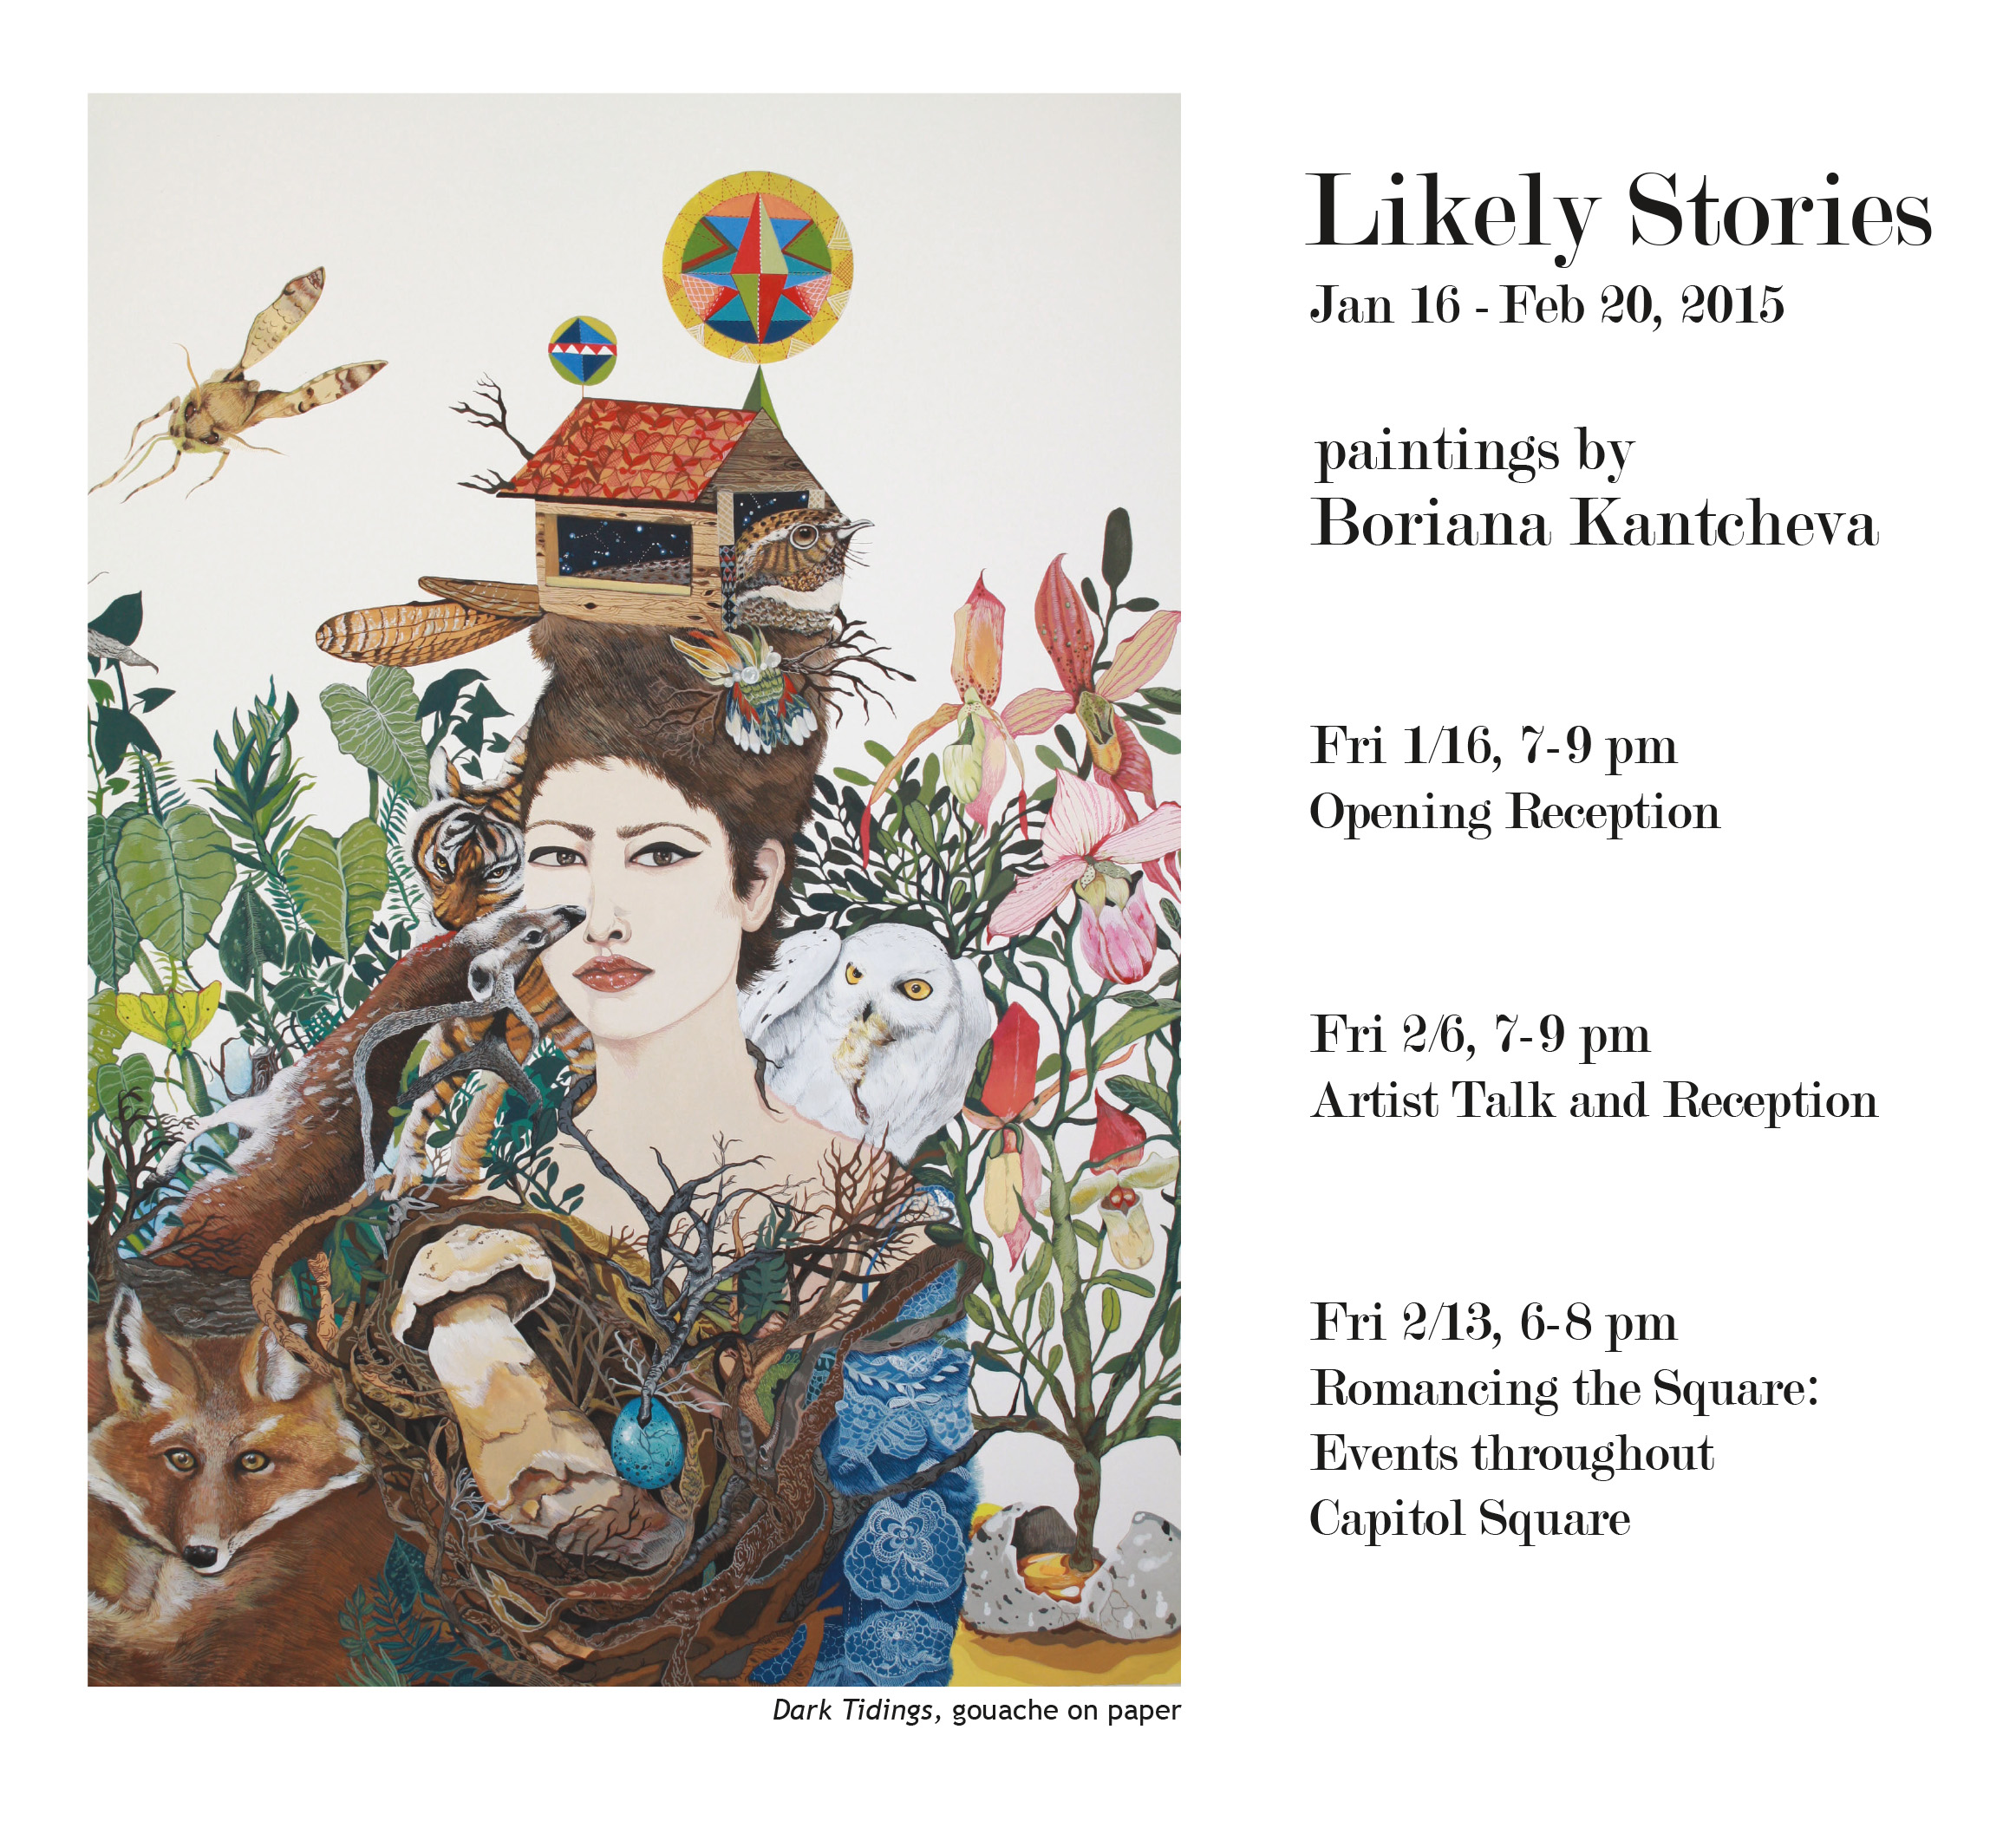 13F Likely Stories WEB Combo 010715-1.jpg